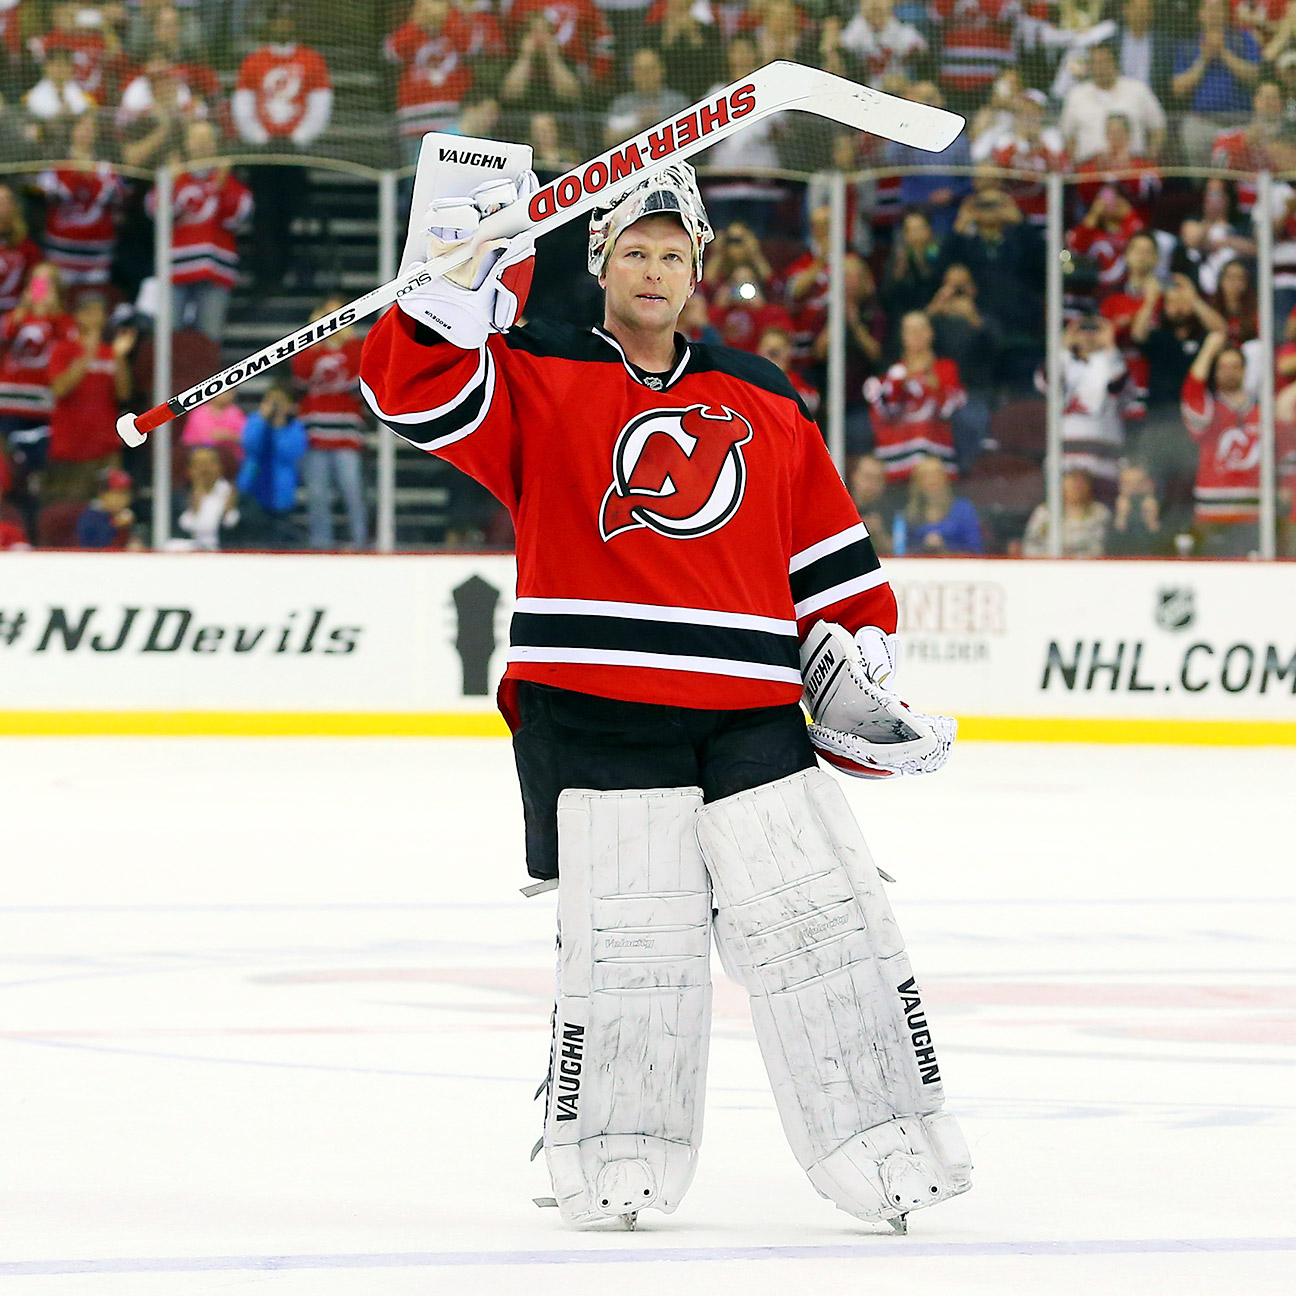 Devils to retire Brodeur's No. 30 jersey on Feb. 9